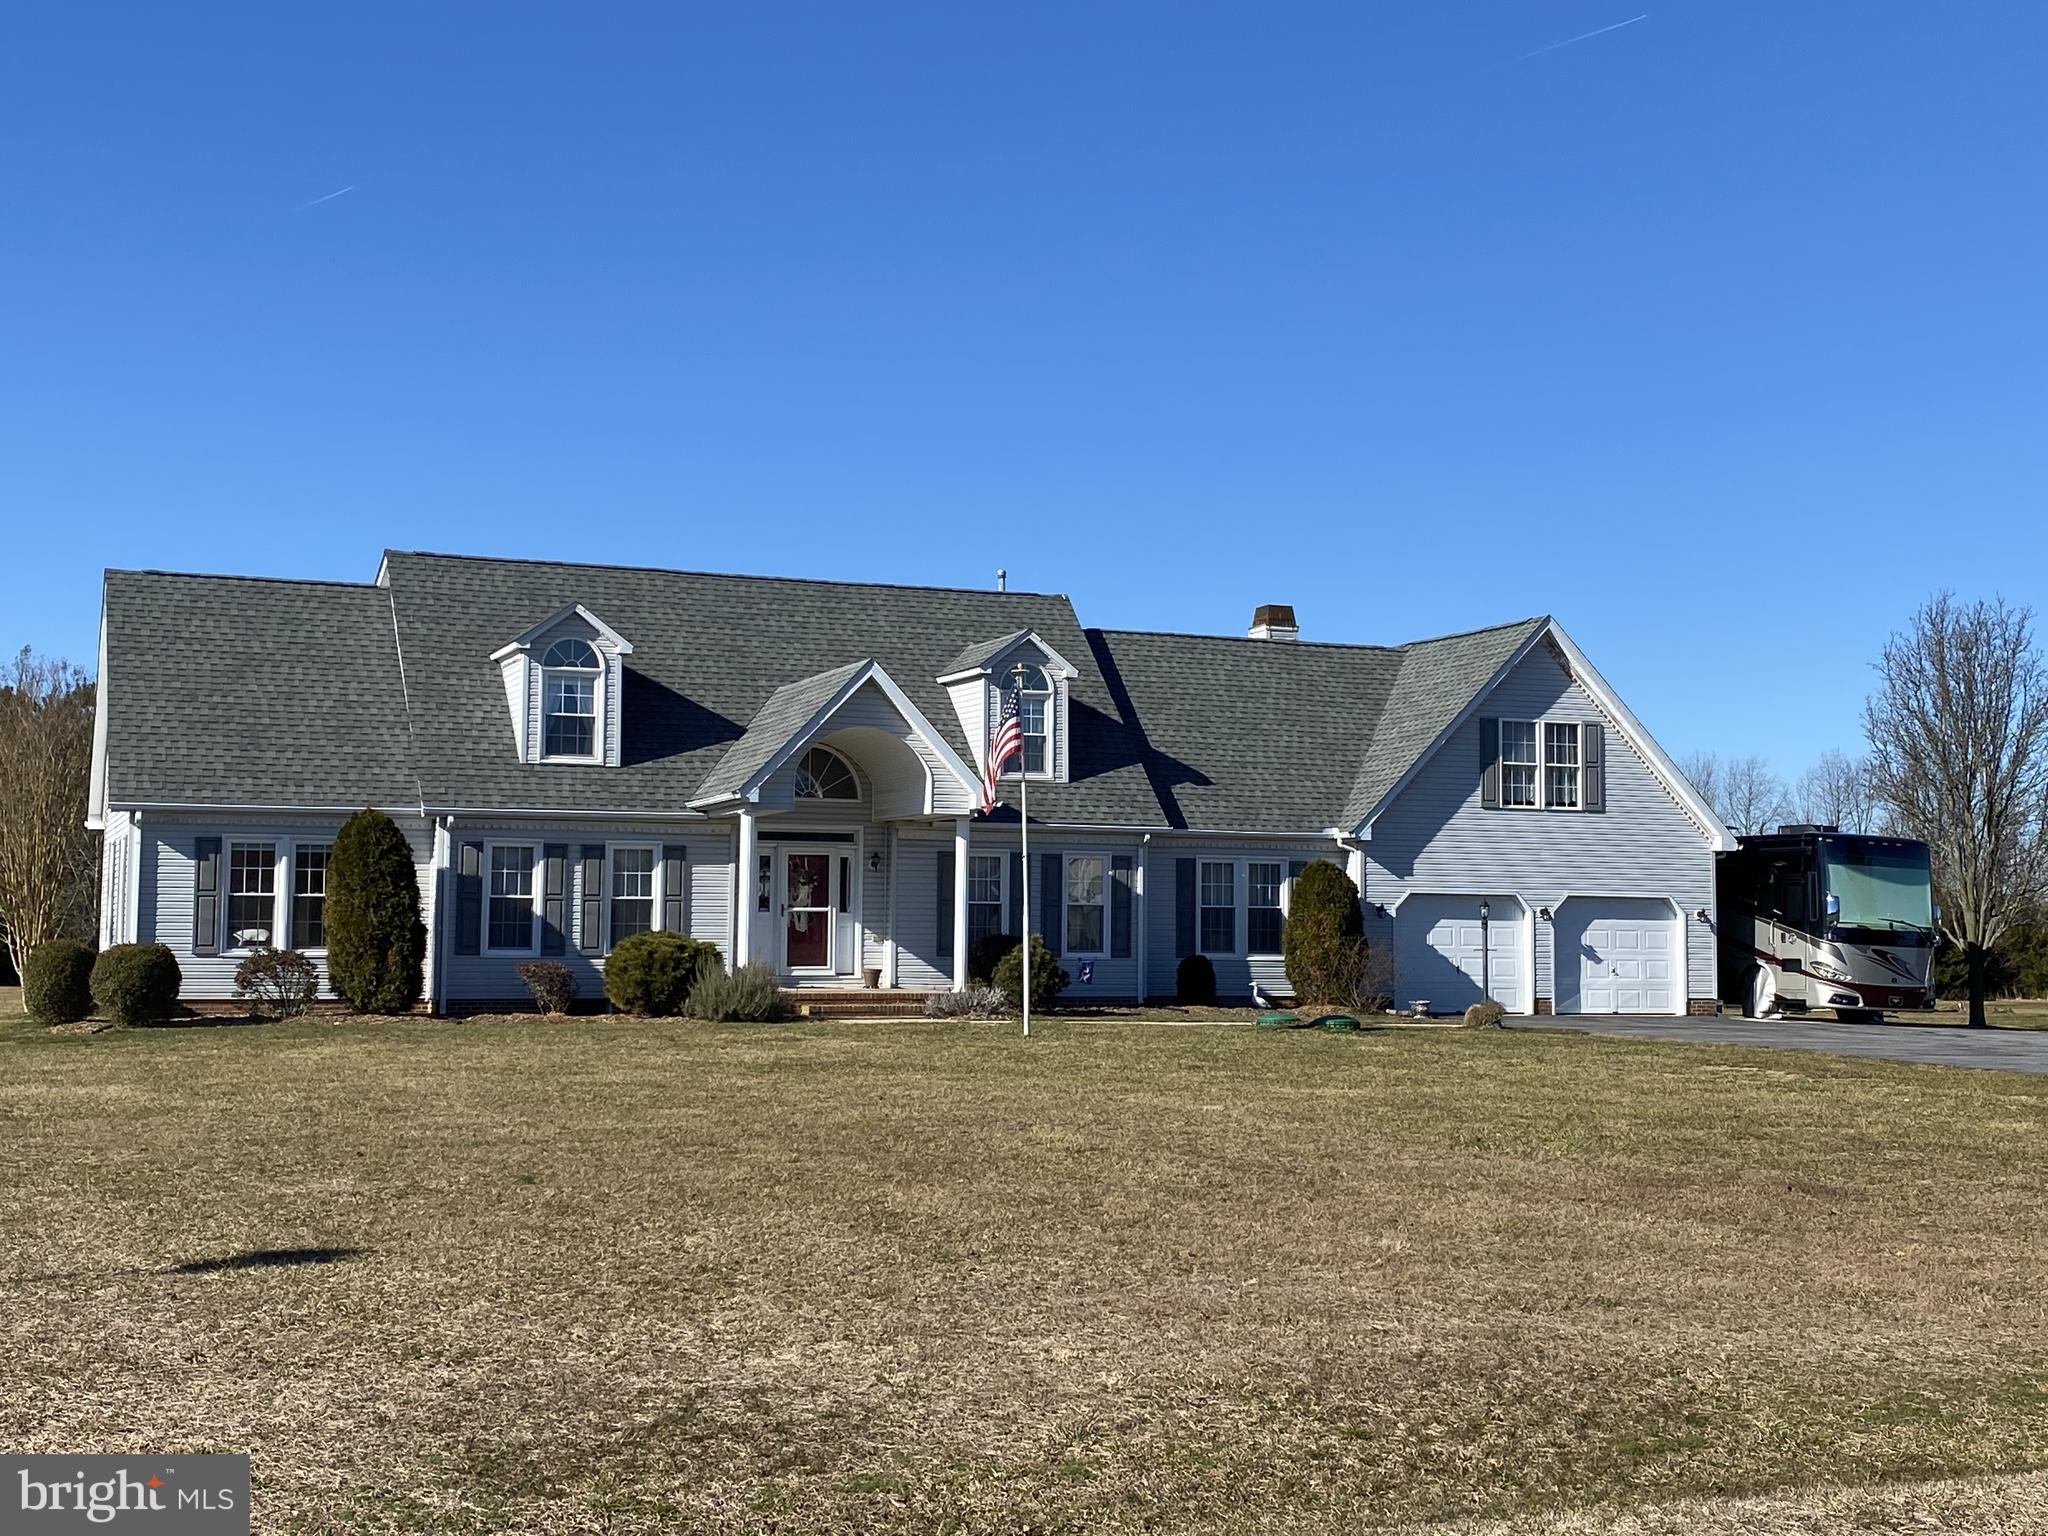 Hard to find home with these amenities on a one acre lot in a small neighborhood! Pride of ownership shows in this custom built 3185 sq ft Cape Cod home. Features include a formal living room, a dining room, eat in kitchen, family room, Florida room, two bonus rooms, basement with bilco door and 3 car garage on one gorgeous acre!  There is a first floor master bedroom that has two large walk in closets, a beautiful master bath with a large custom tiled shower with  built in seats both inside and outside the shower, tile flooring and two separate vanities and sinks. The family room has a cozy gas fireplace and pocket doors to close off the room. The kitchen has recessed lighting and tons of cabinets and counter space, great for entertaining! And there is a formal living room and dining room.  The upstairs floor plan features a unique layout with bonus rooms that are attached to each of the bedrooms, making a wonderful office, workout room, craft room, playroom or extra room for guests.  Also on this level is a floored walk in attic, great for storage. A favorite room of the house is sure to be the 21 x 15 Florida room with a vaulted ceiling that overlooks the large back yard. It opens to the 20 x 14 deck. The large driveway can easily hold 10 vehicles and RV's are allowed to be parked there. In addition to the attached two car garage, there is a separate garage with electric that could be used as a garage or awesome workshop. Home has beautiful custom colors throughout.  Includes a one year 2-10 Home Buyers Warranty for peace of mind. Great location close to DAFB, CR School District, shopping and easy access to RT 1. Nothing to do but move in!